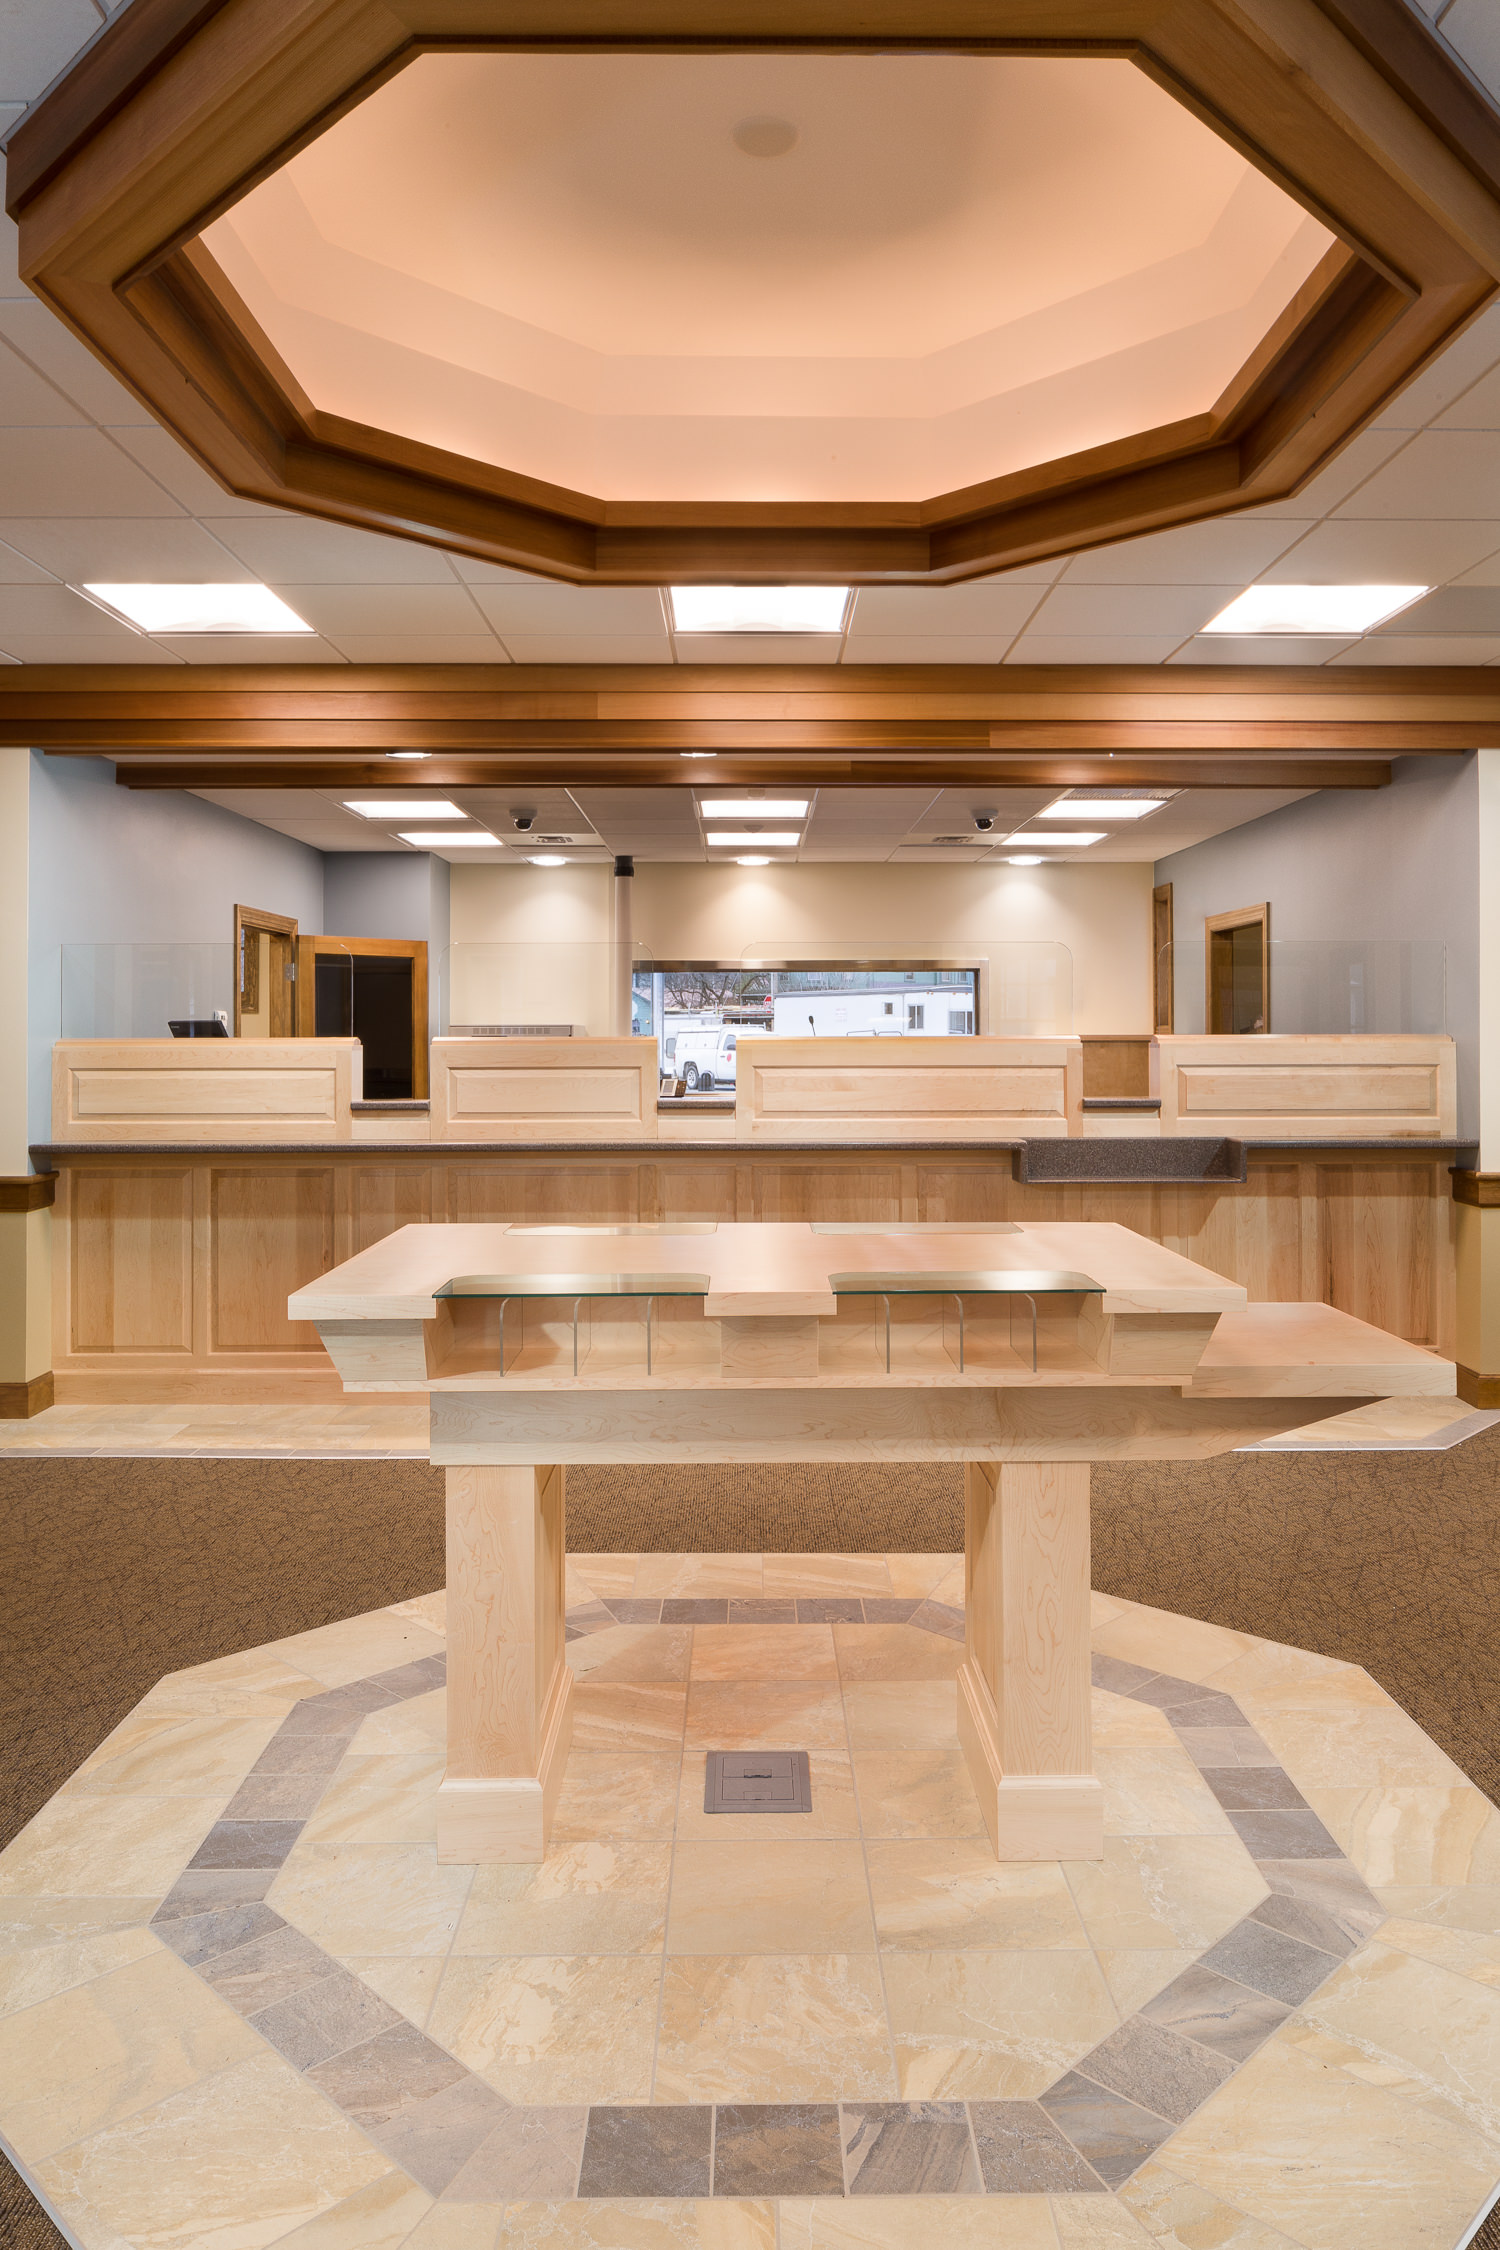 Architectural photo of commercial & municipal spaces for Neagley & Chase Construction Co by Stina Booth of Studio SB